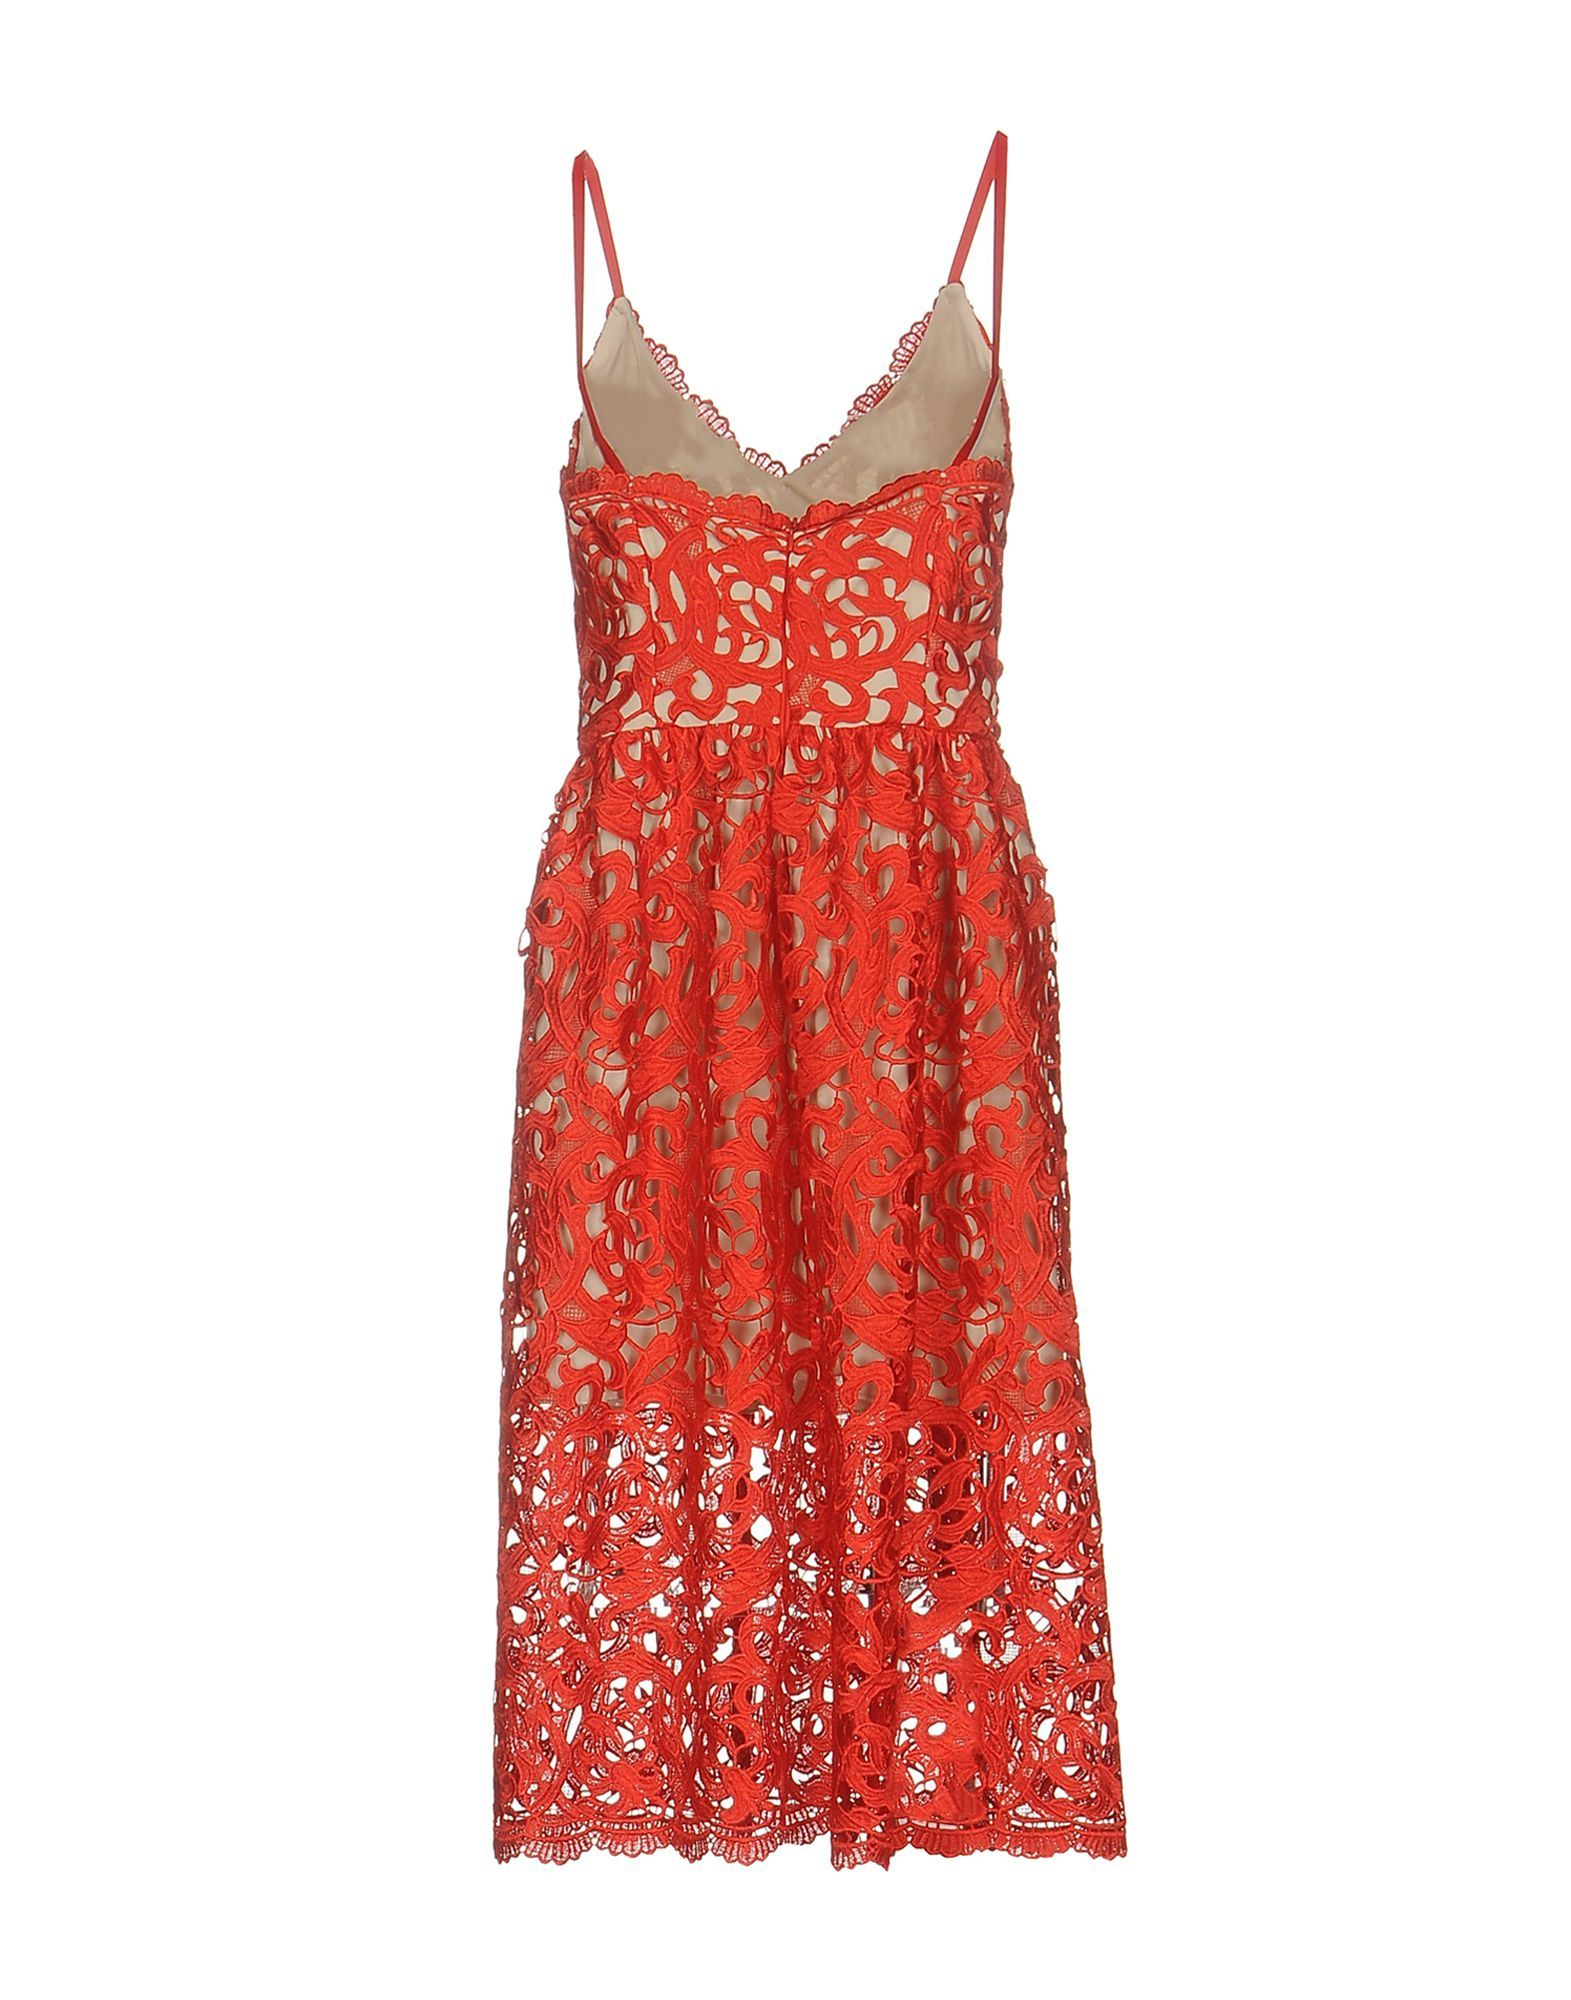 Maiocci Red Cotton Lace Dress